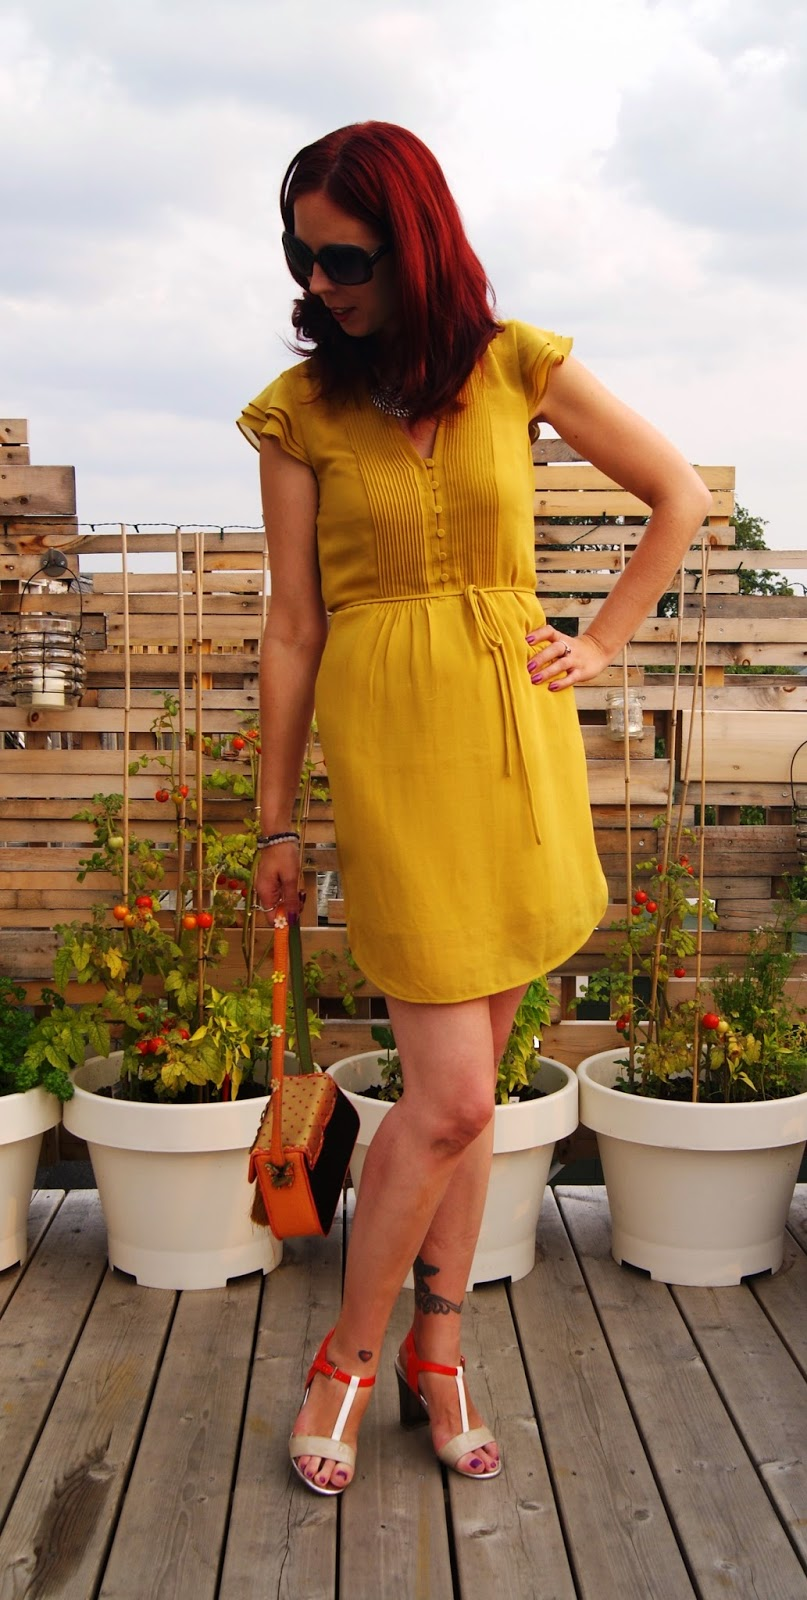 Mustard Yellow Warmth!: H&M Dress, Mary Frances Purse, Jessica Shoes from Sears, Shop For Jayu Necklace, Fall, Summer, Trend, OOTD, Outfit, fashion, style, styletips, thepurplescarf, melanie.ps, toronto,ontario, canada